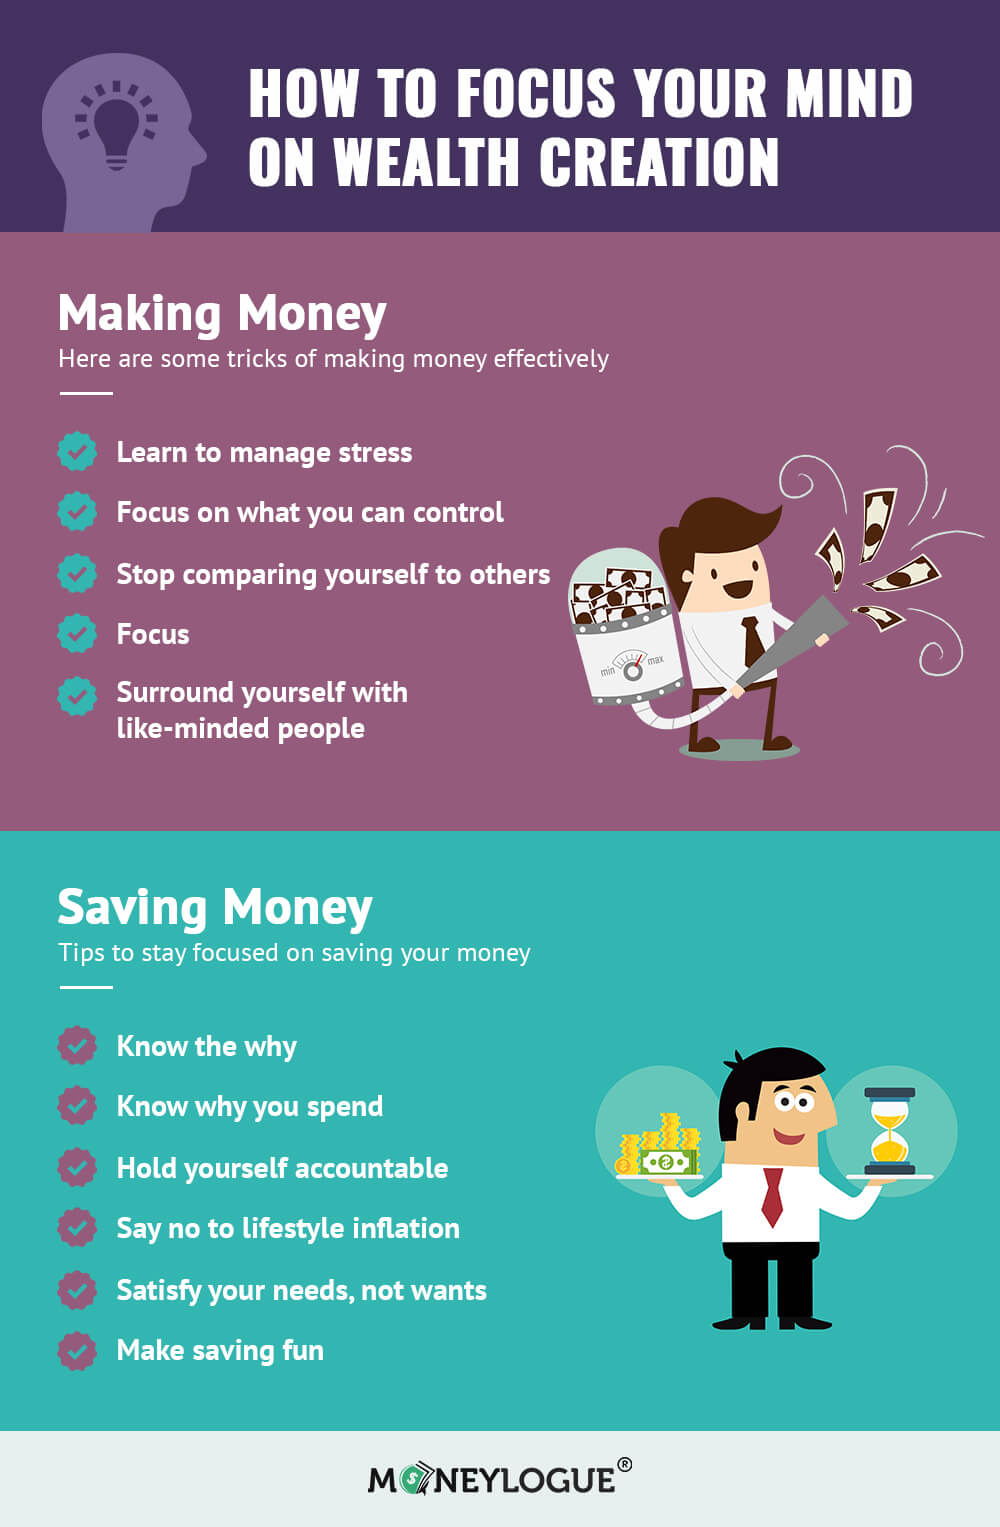 Saving & Making Money